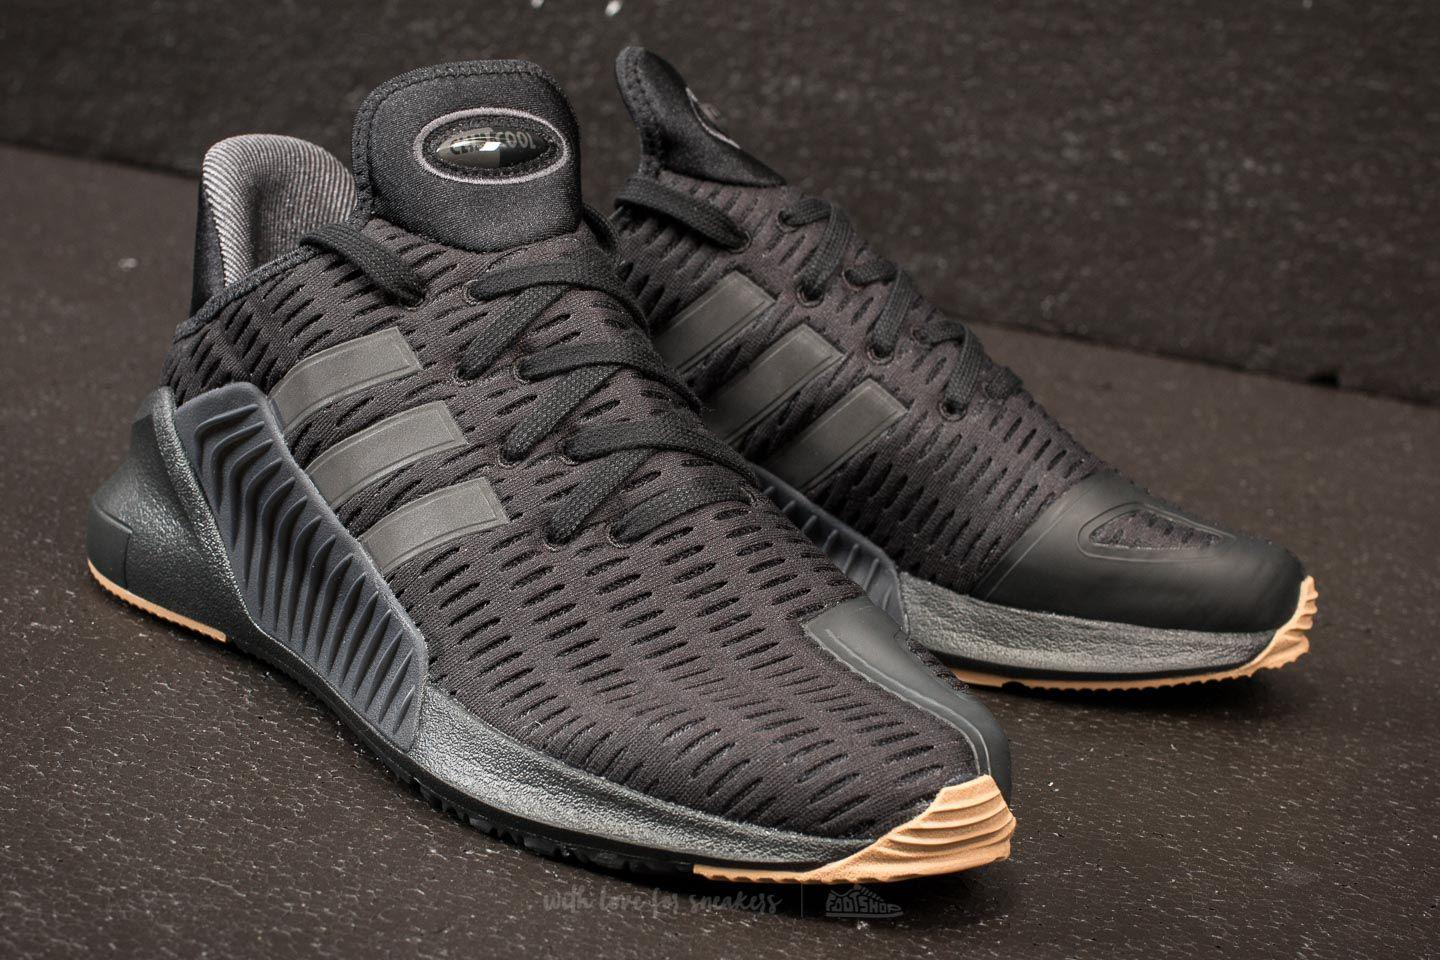 detailed look 482fa 2a8c8 Lyst - adidas Originals Adidas Climacool 0217 Core Black Car